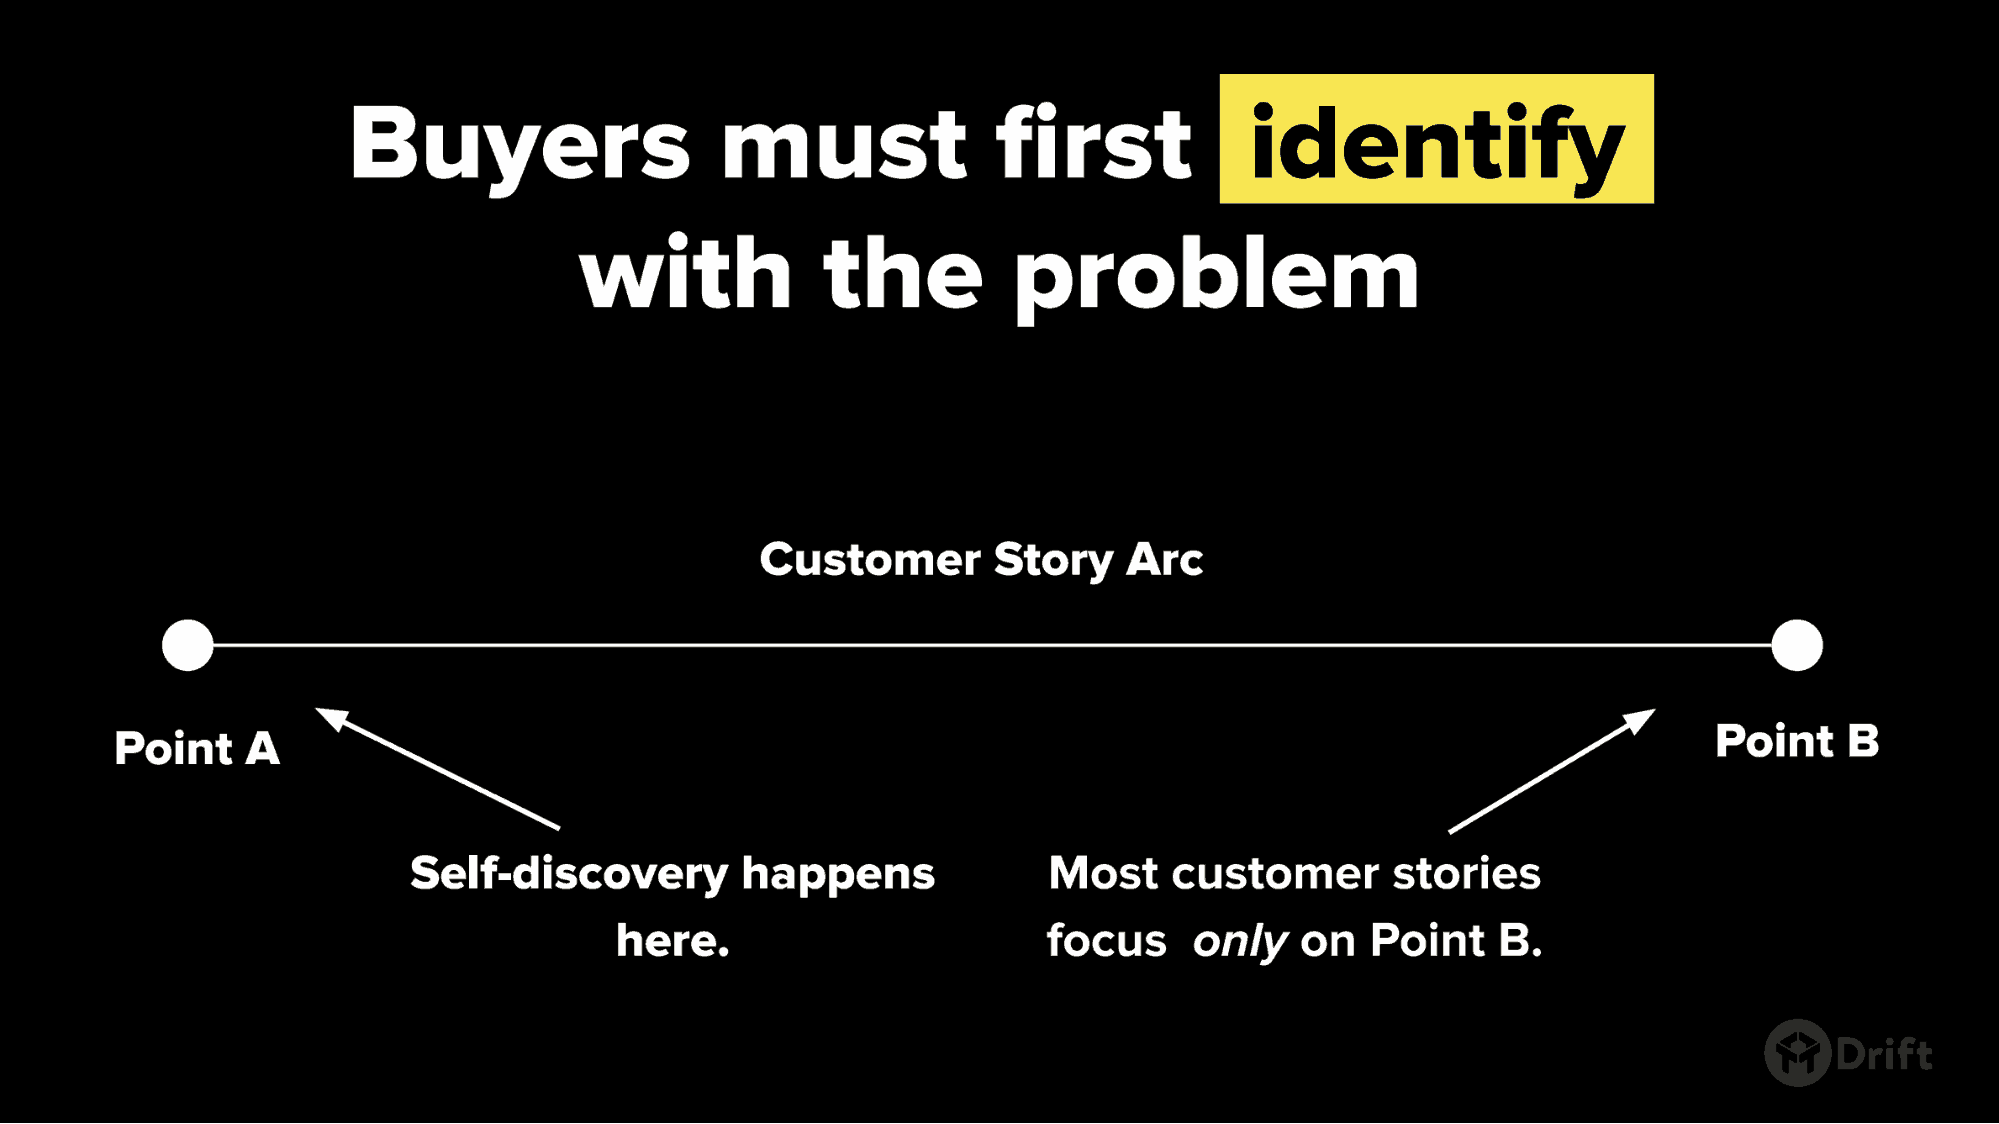 Help buyers identify with the problem